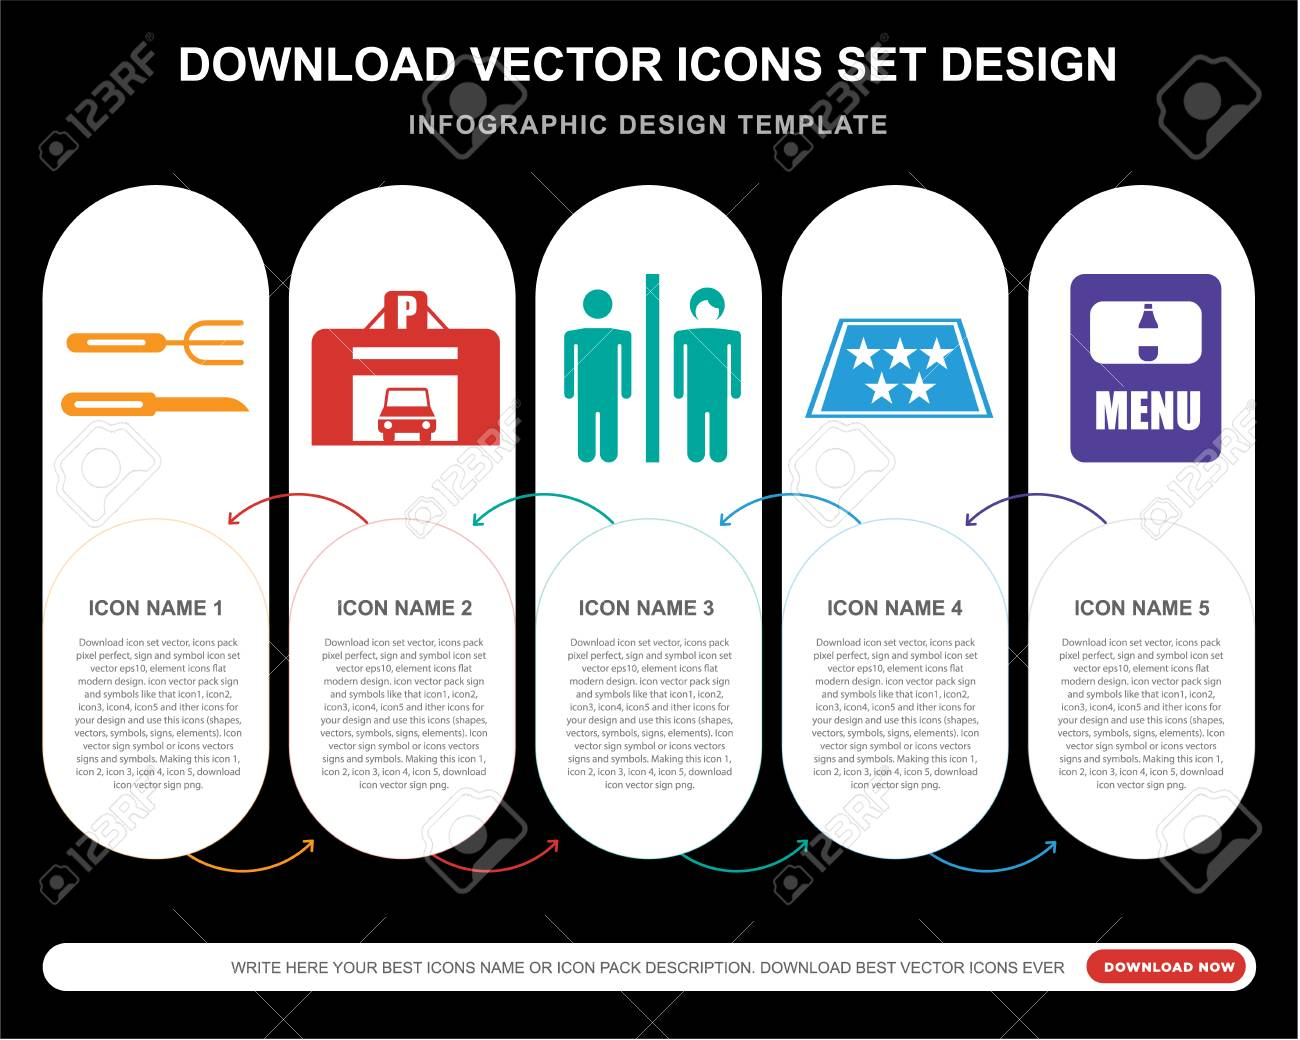 5 vector icons such as Cutlery, Parking, Toilet, Five stars,